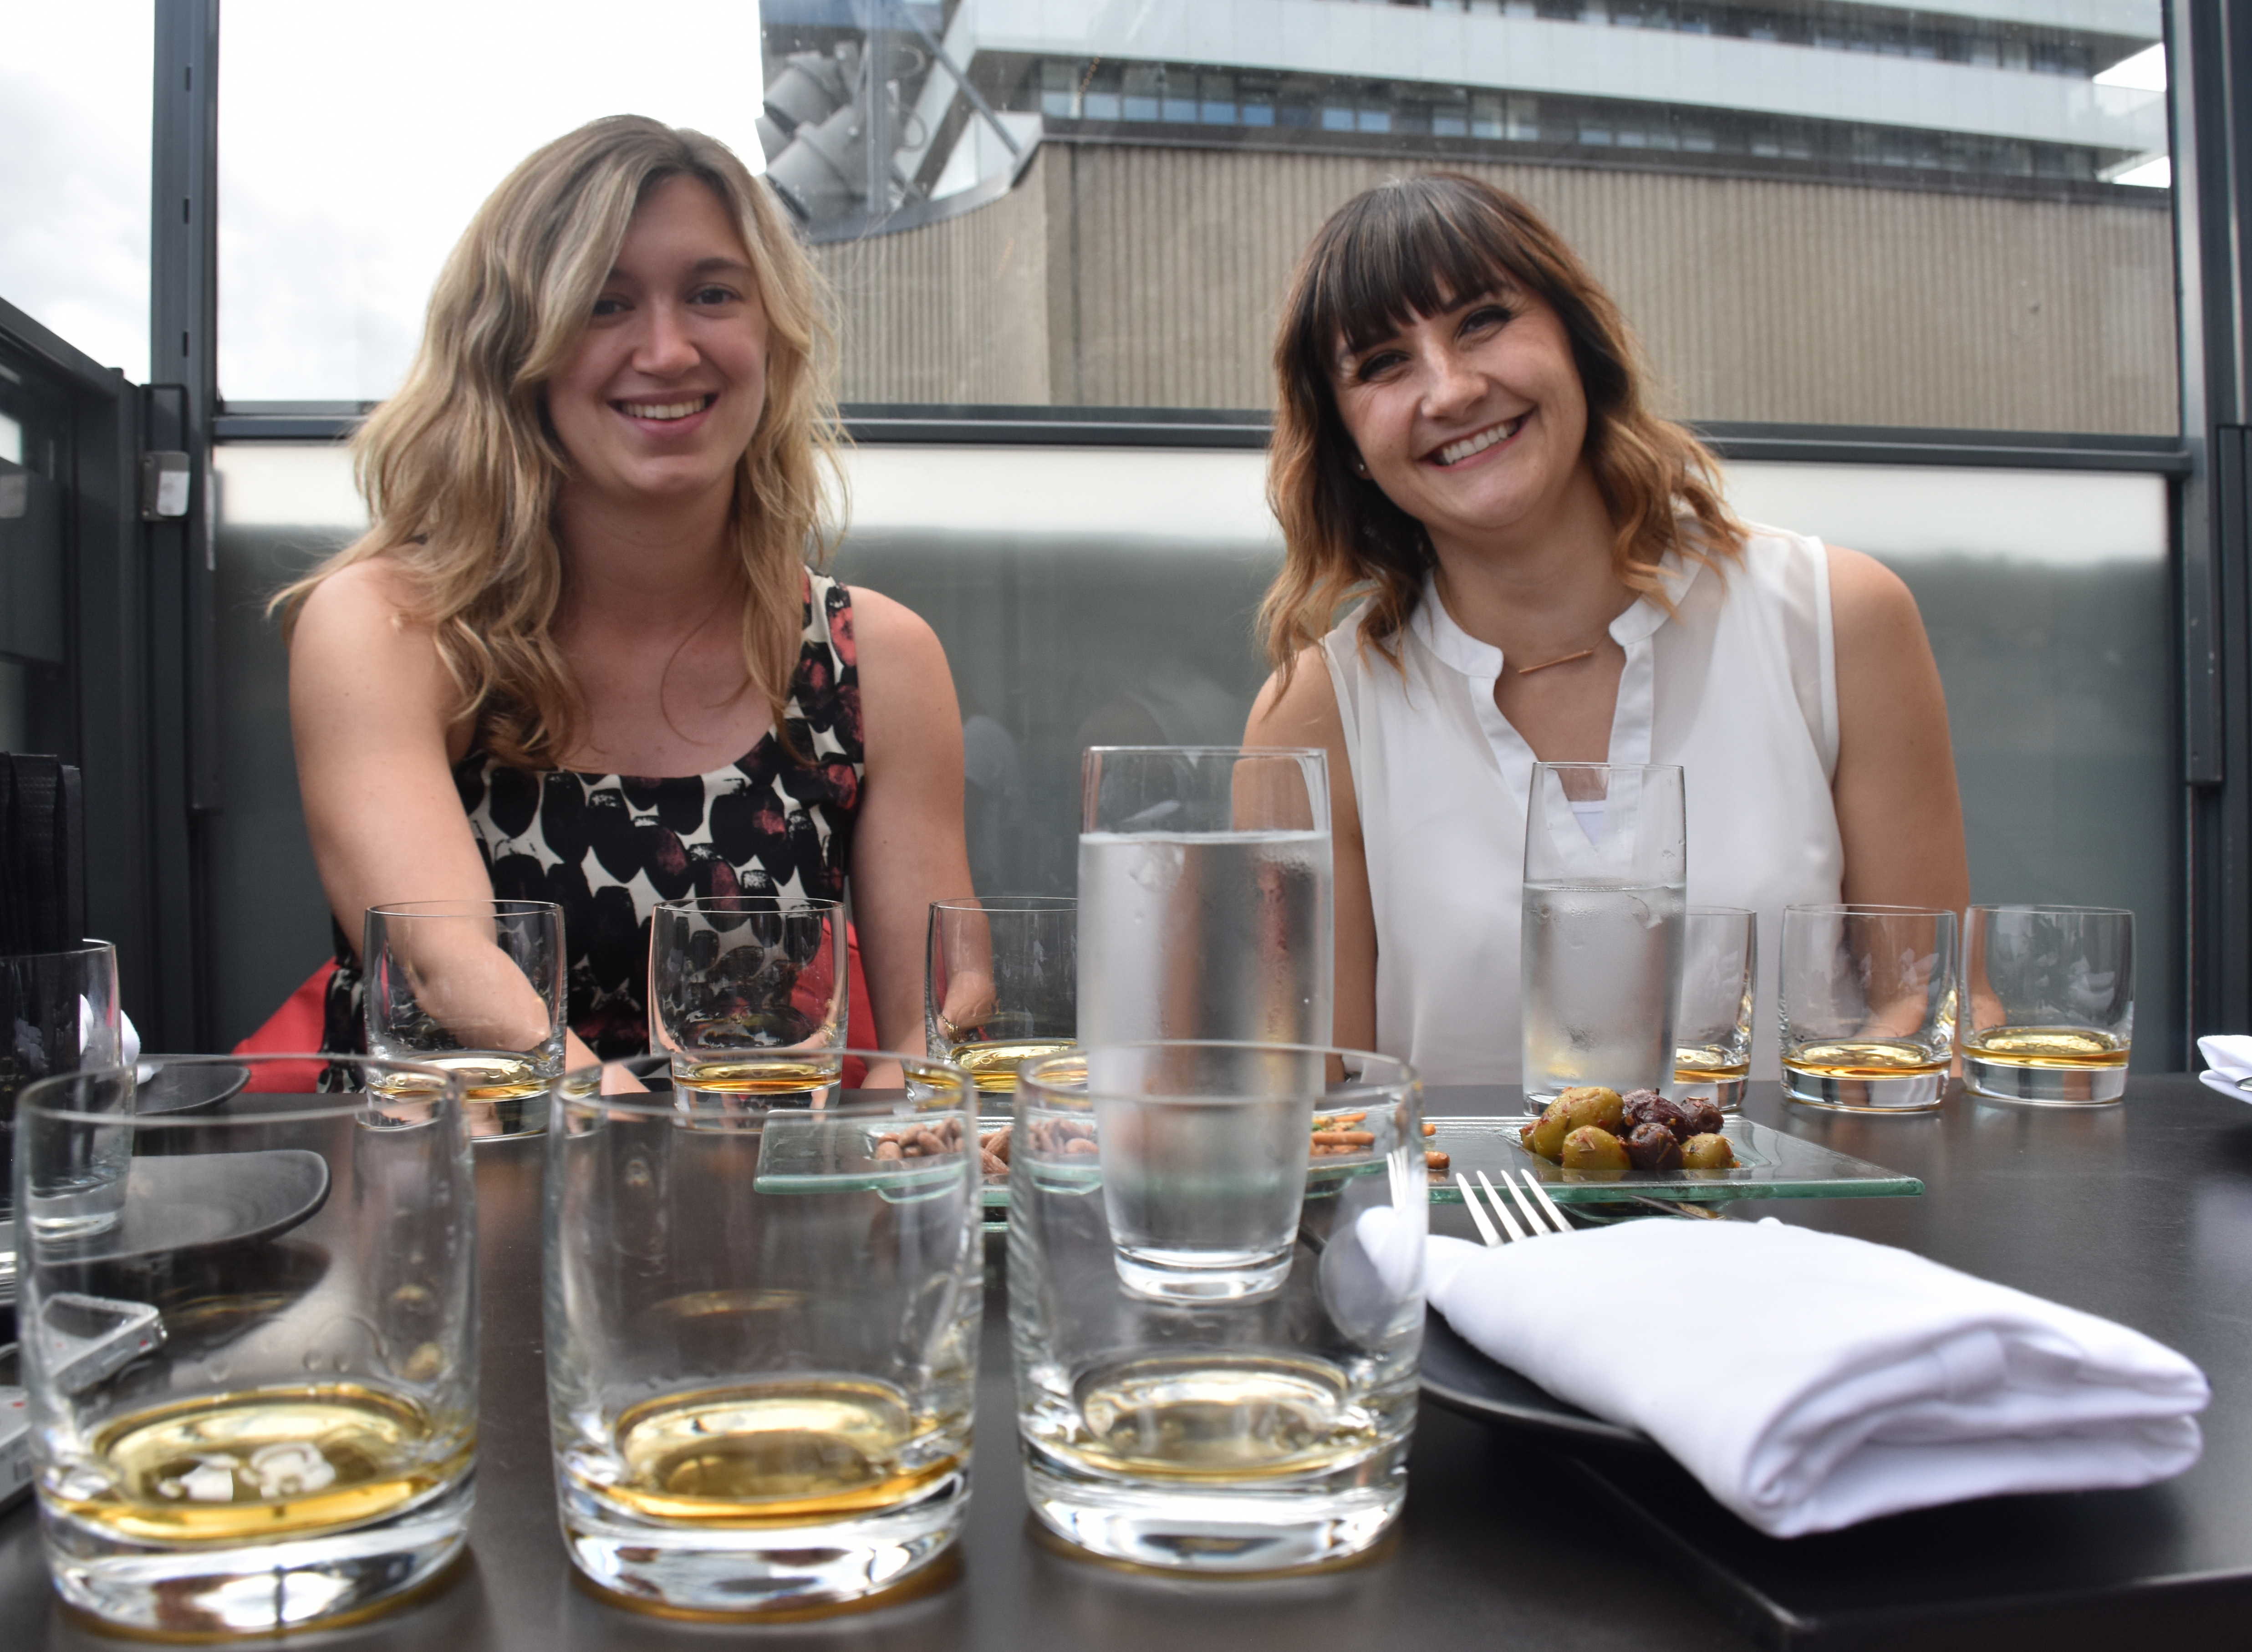 Two women sit at a table with multiple tasting glasses of whiskey in front of them, they are smiling at the camera